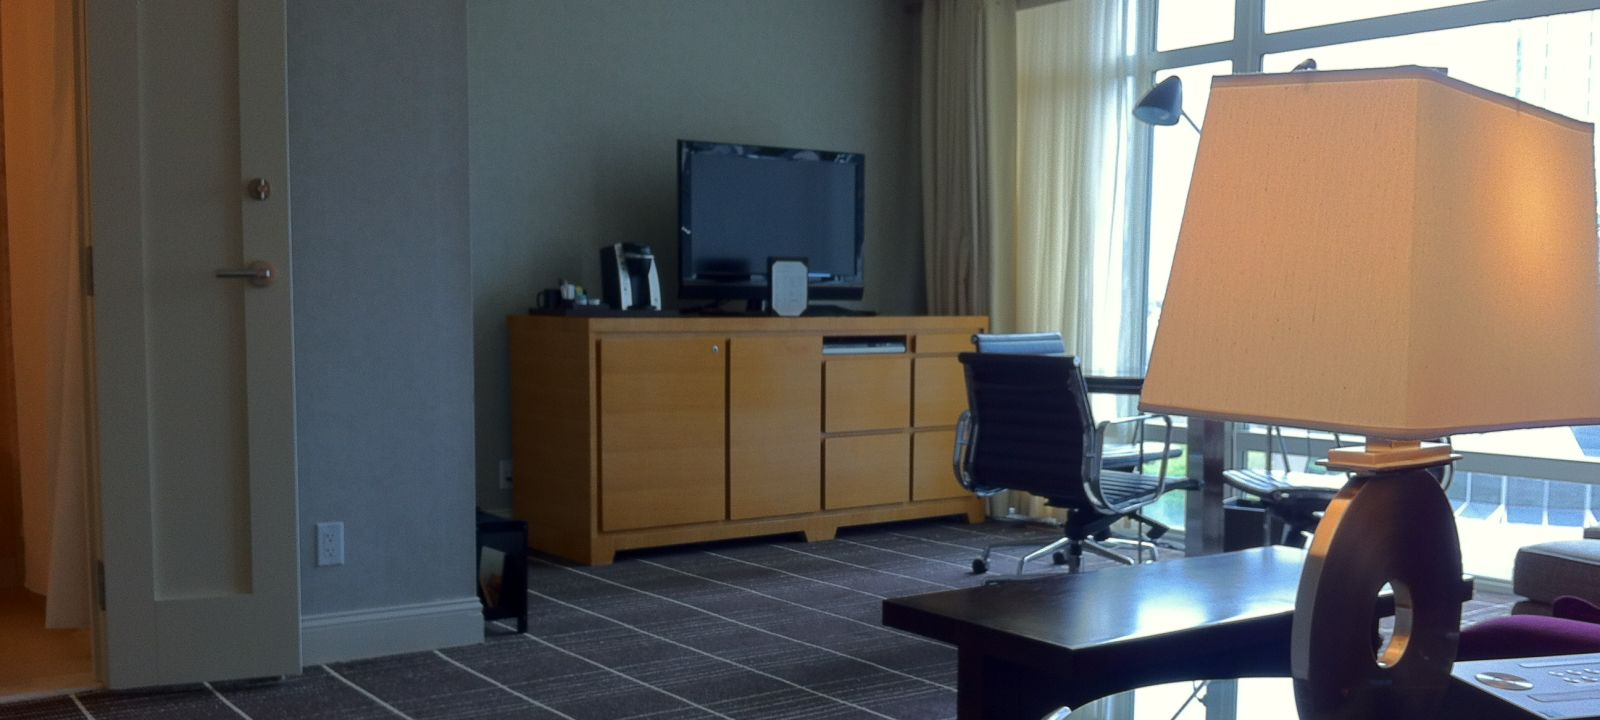 Hotel suite in Boston with separate living room area with a large window and flat screen tv